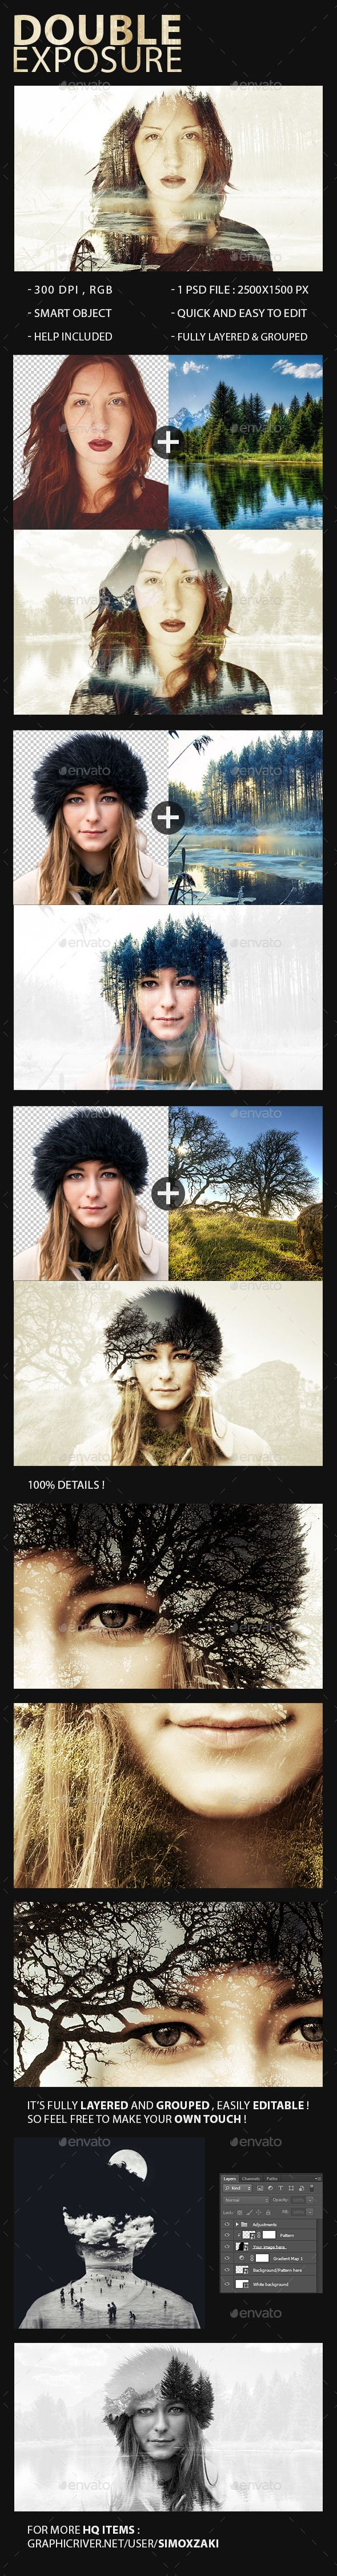 Double Exposure Maker  -  PSD Template • Download ➝ https://graphicriver.net/item/double-exposure-maker/11097407?ref=pxcr